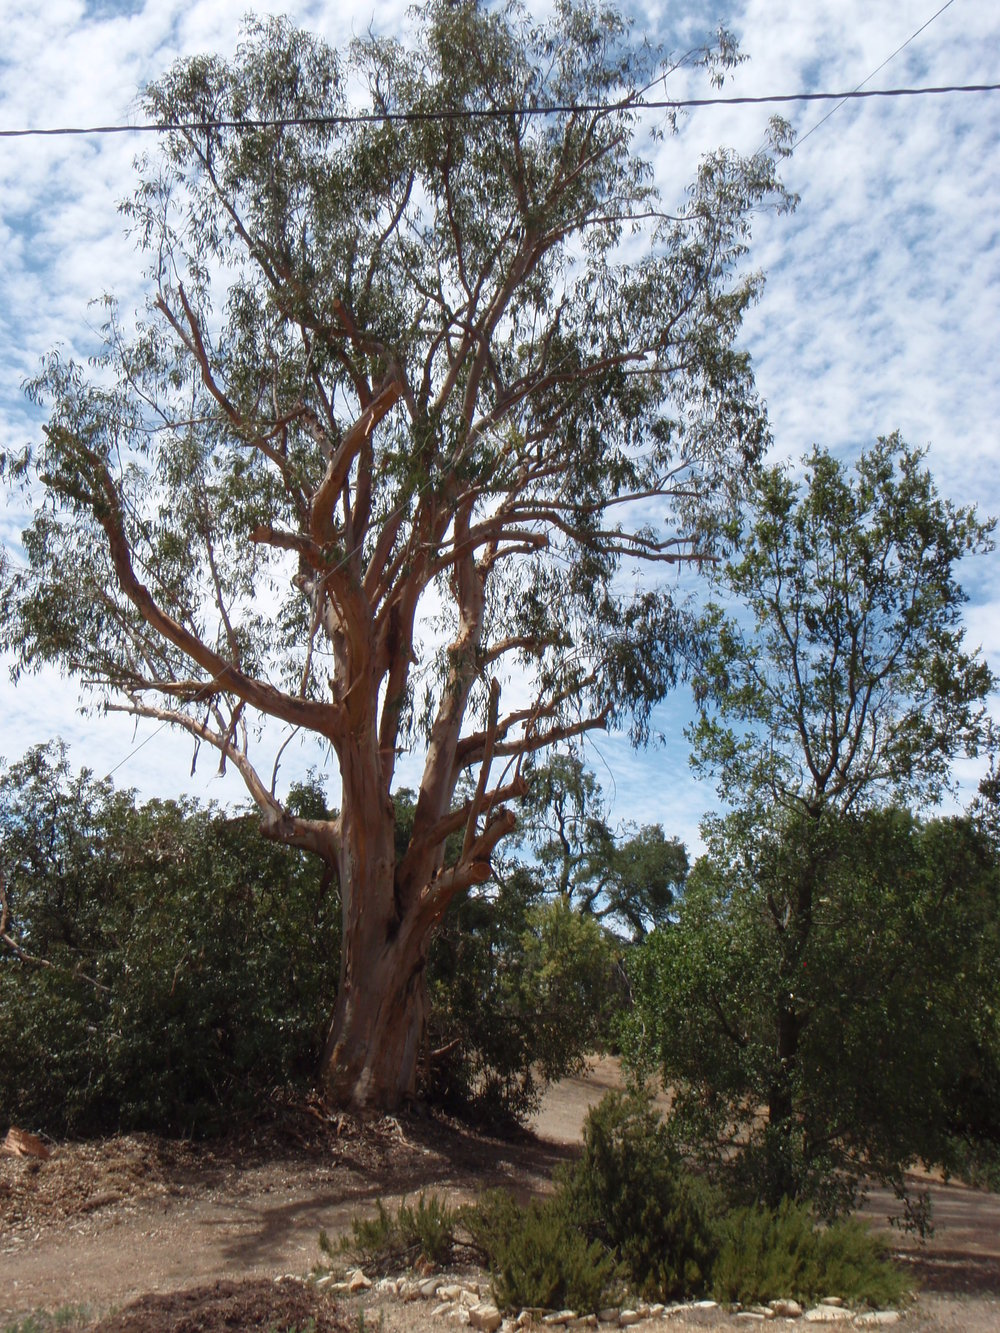 THE BIG EUCALYPTUS that stood near the beginning of the pathway to Baba's Tree. This photo was taken in 2013 just after the tree was trimmed to reduce the danger of falling limbs. (Photo: Margaret Magnus)